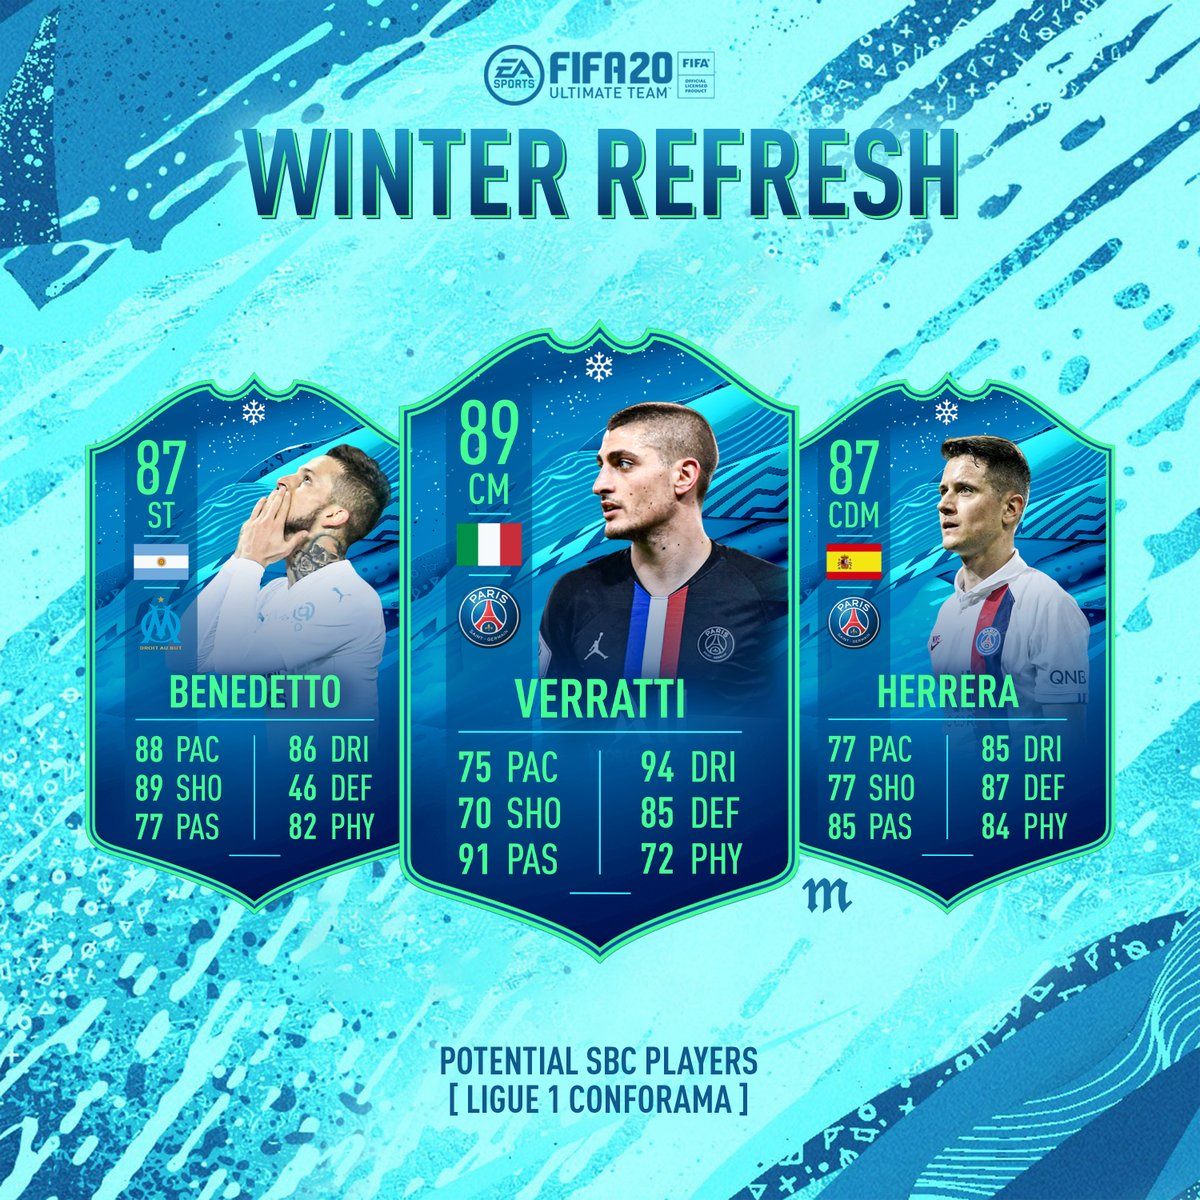 One of these would be pretty sick tbh, I wouldn't hesitate to complete the SBC if Benedetto was the 3rd player! #WinterRefresh #FIFA20